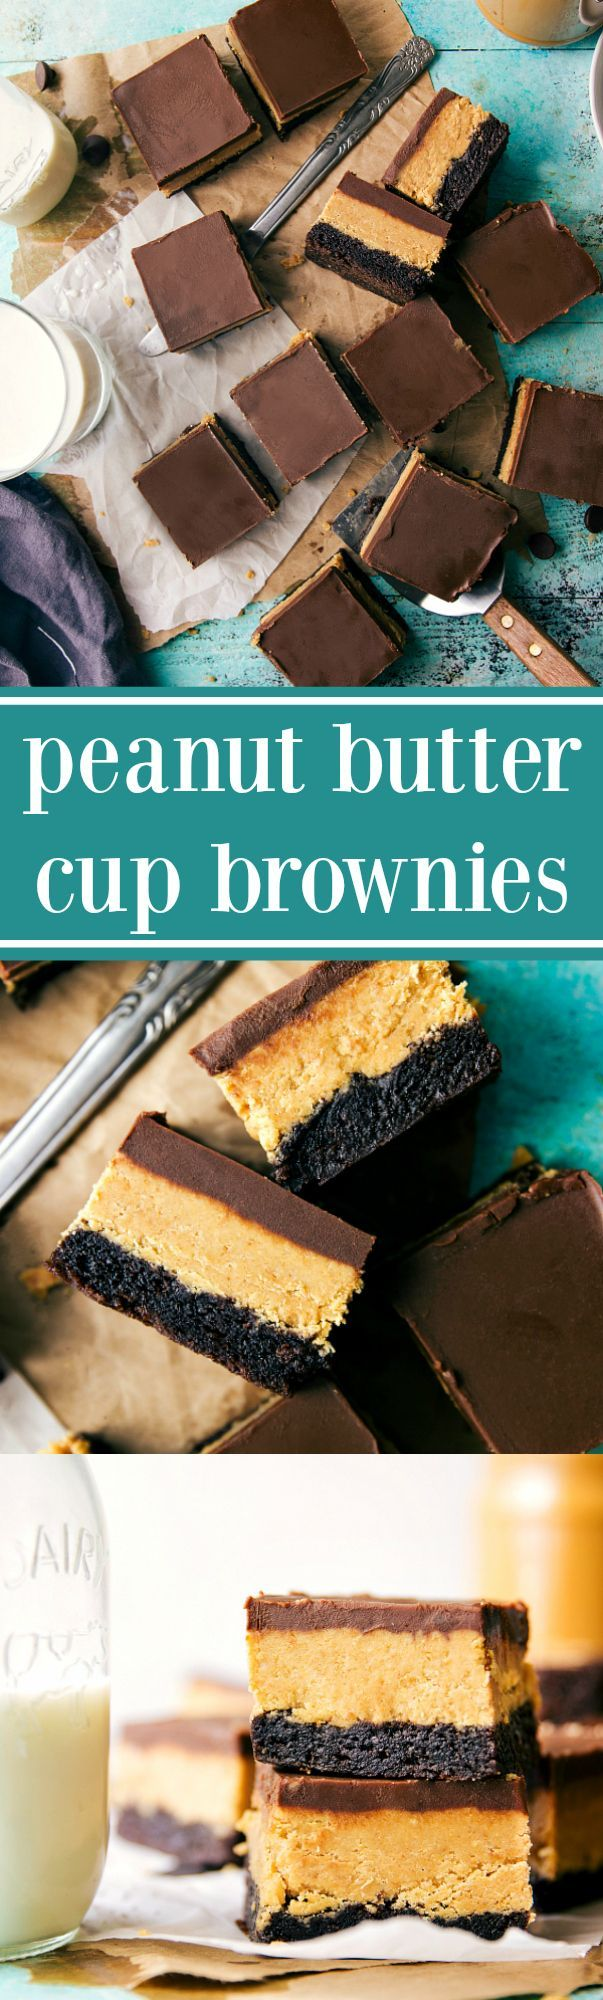 DELICIOUS AND SIMPLE PEANUT BUTTER CUP BROWNIES